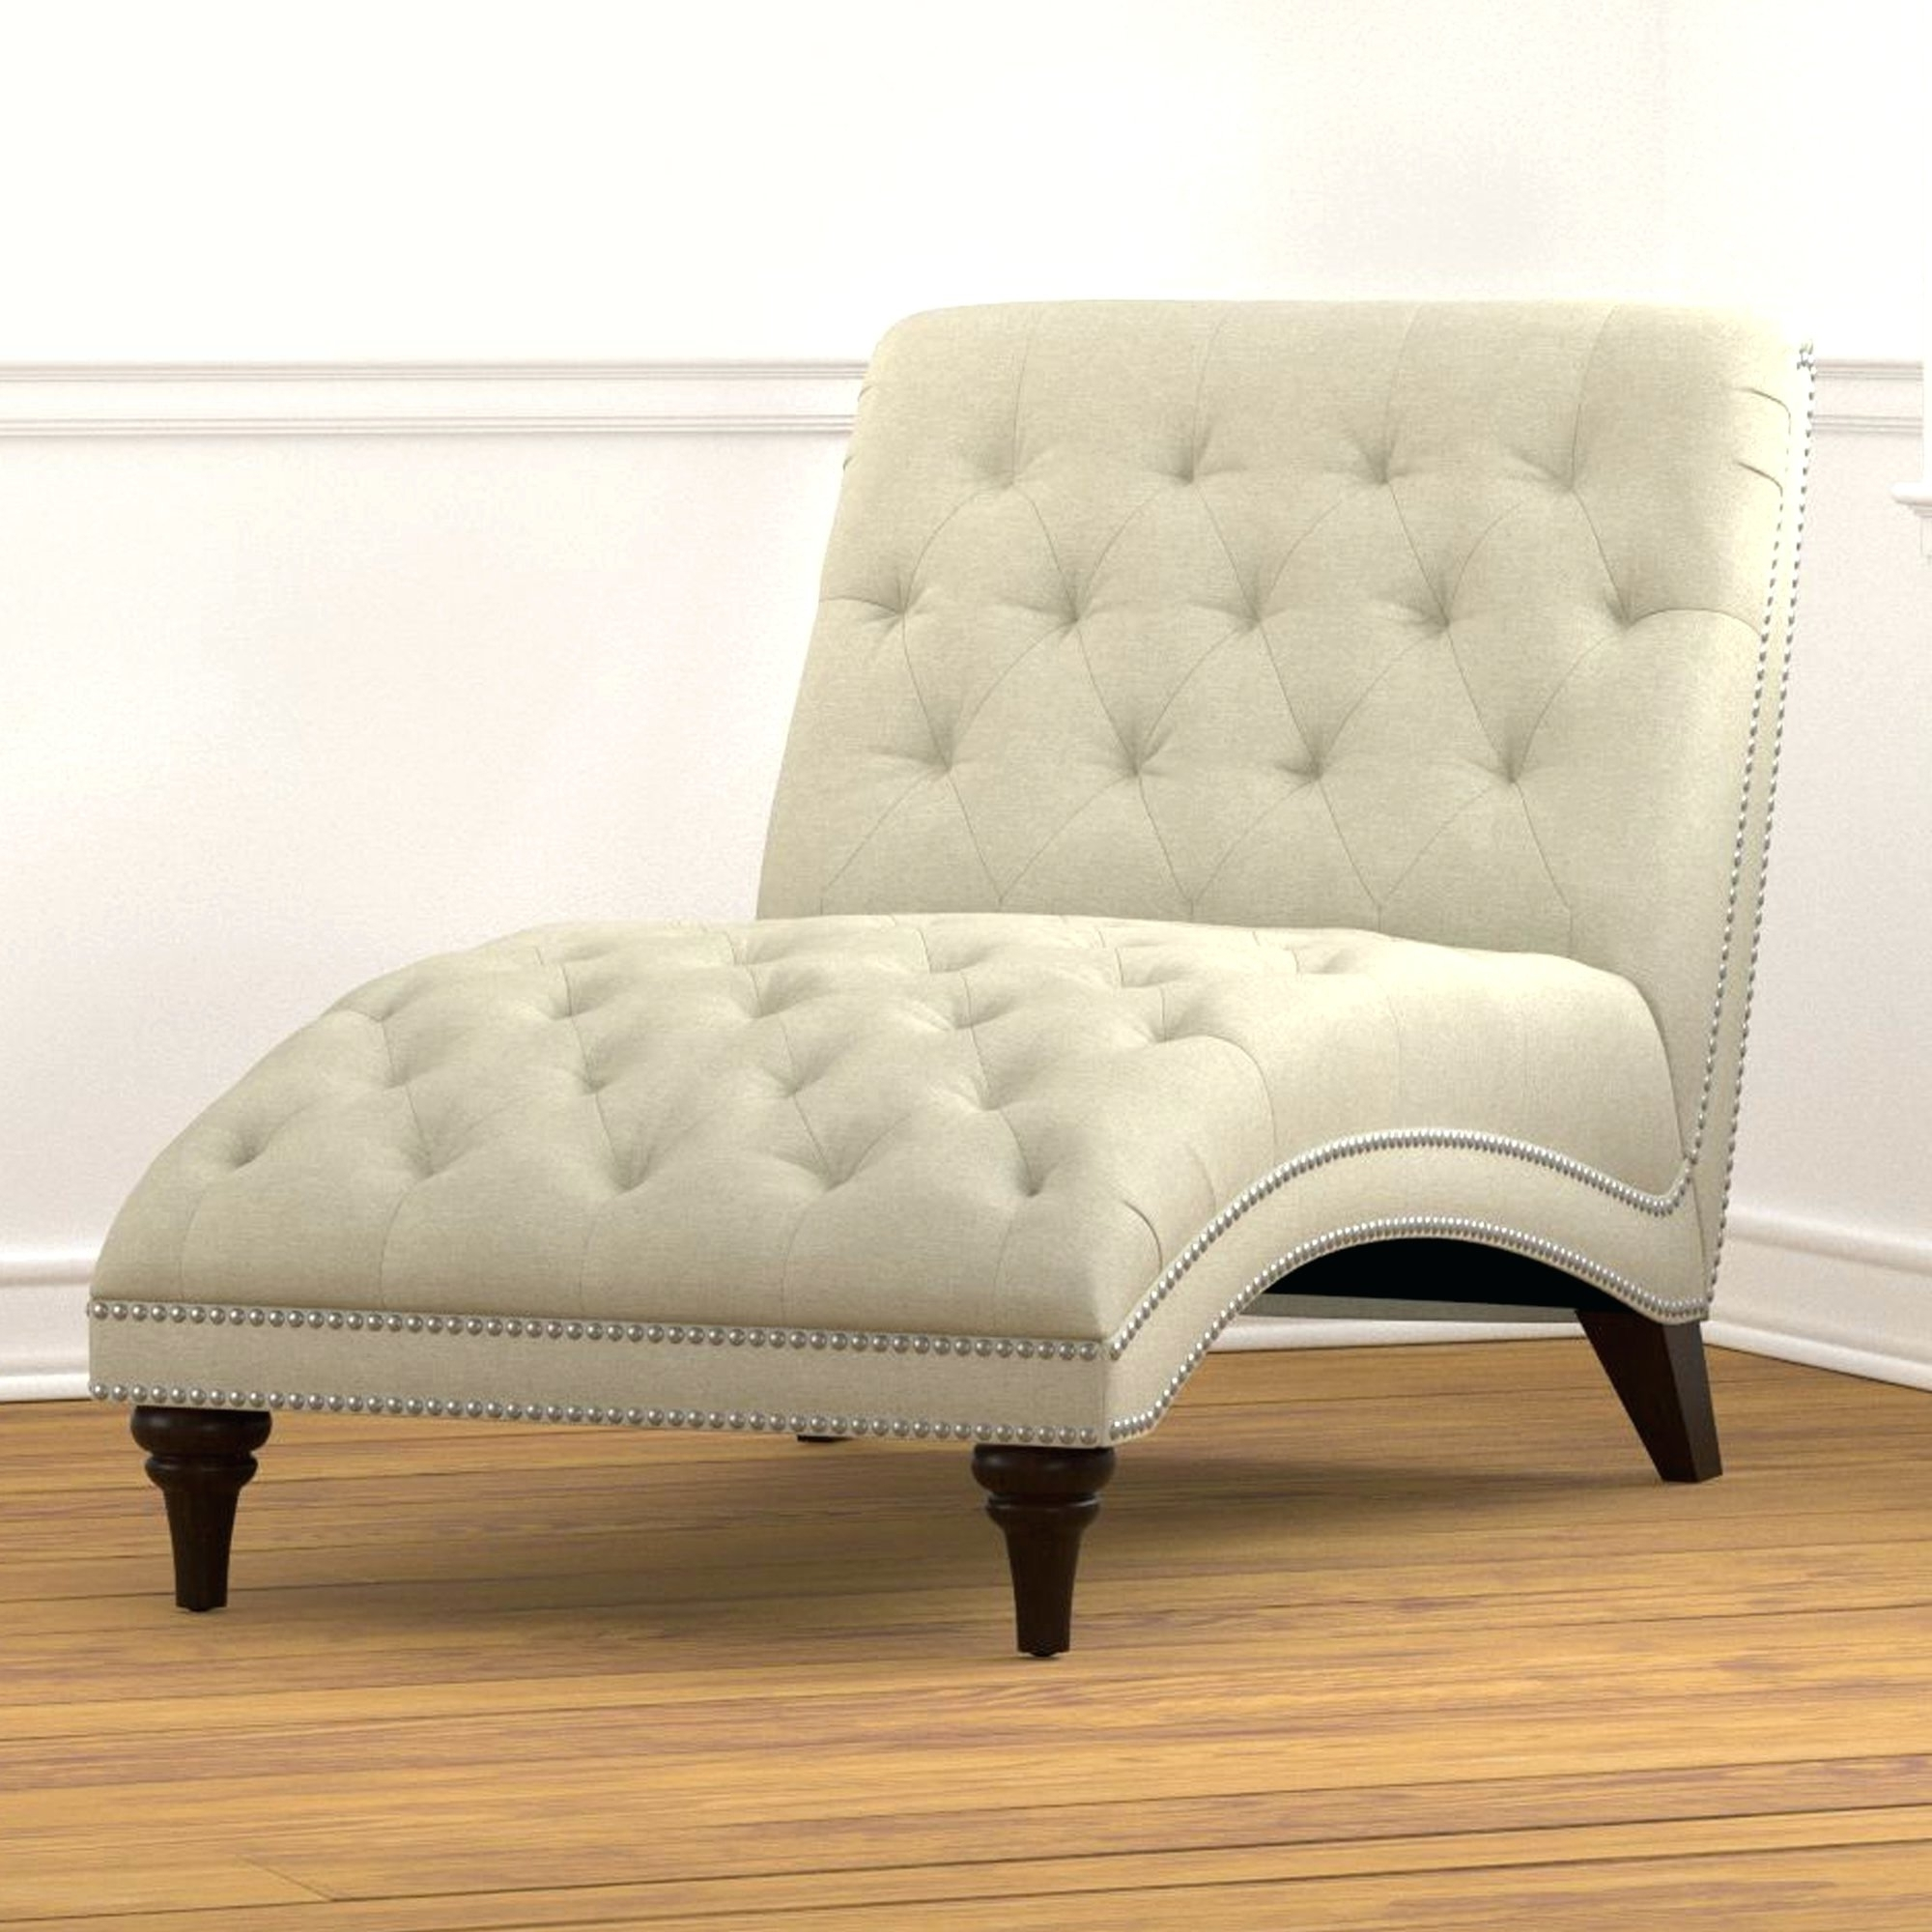 Alessia Chaise Lounge Chair Tufted • Lounge Chairs Ideas Throughout Well Known Alessia Chaise Lounge Tufted Chairs (View 3 of 15)